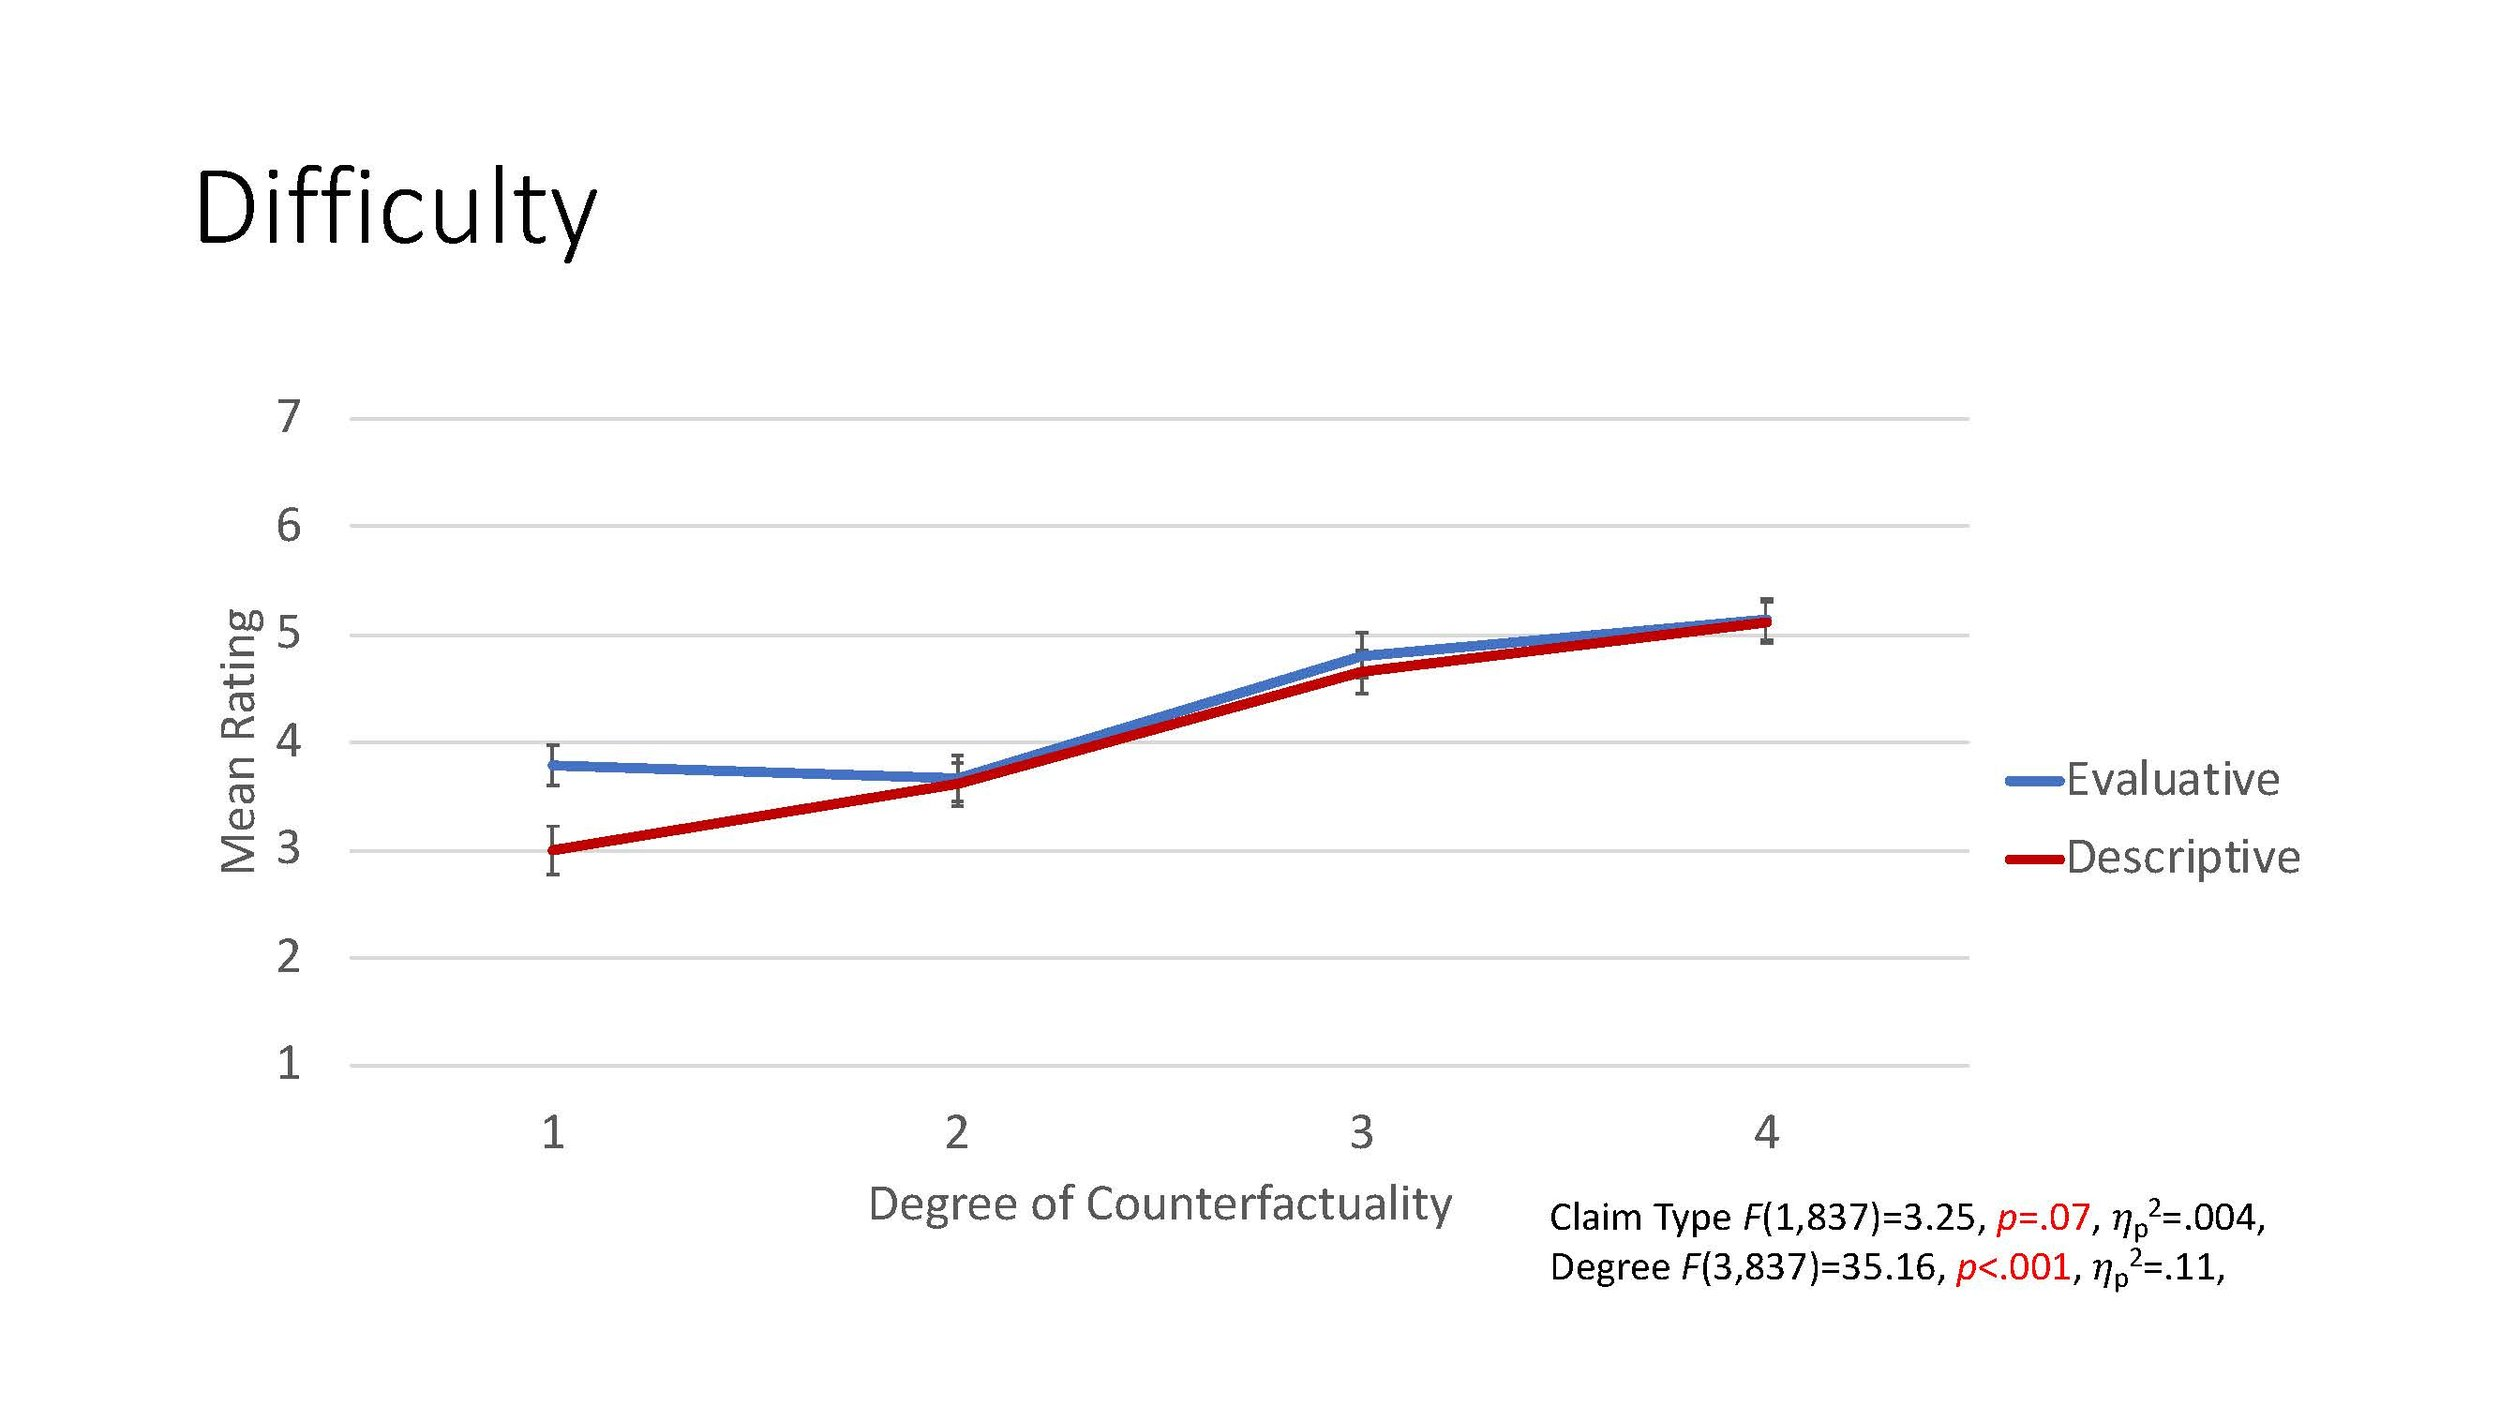 Figure 2 . Mean ratings of imaginative resistance in terms of difficulty judgments for evaluative and descriptive claims across degrees of counterfactuality.